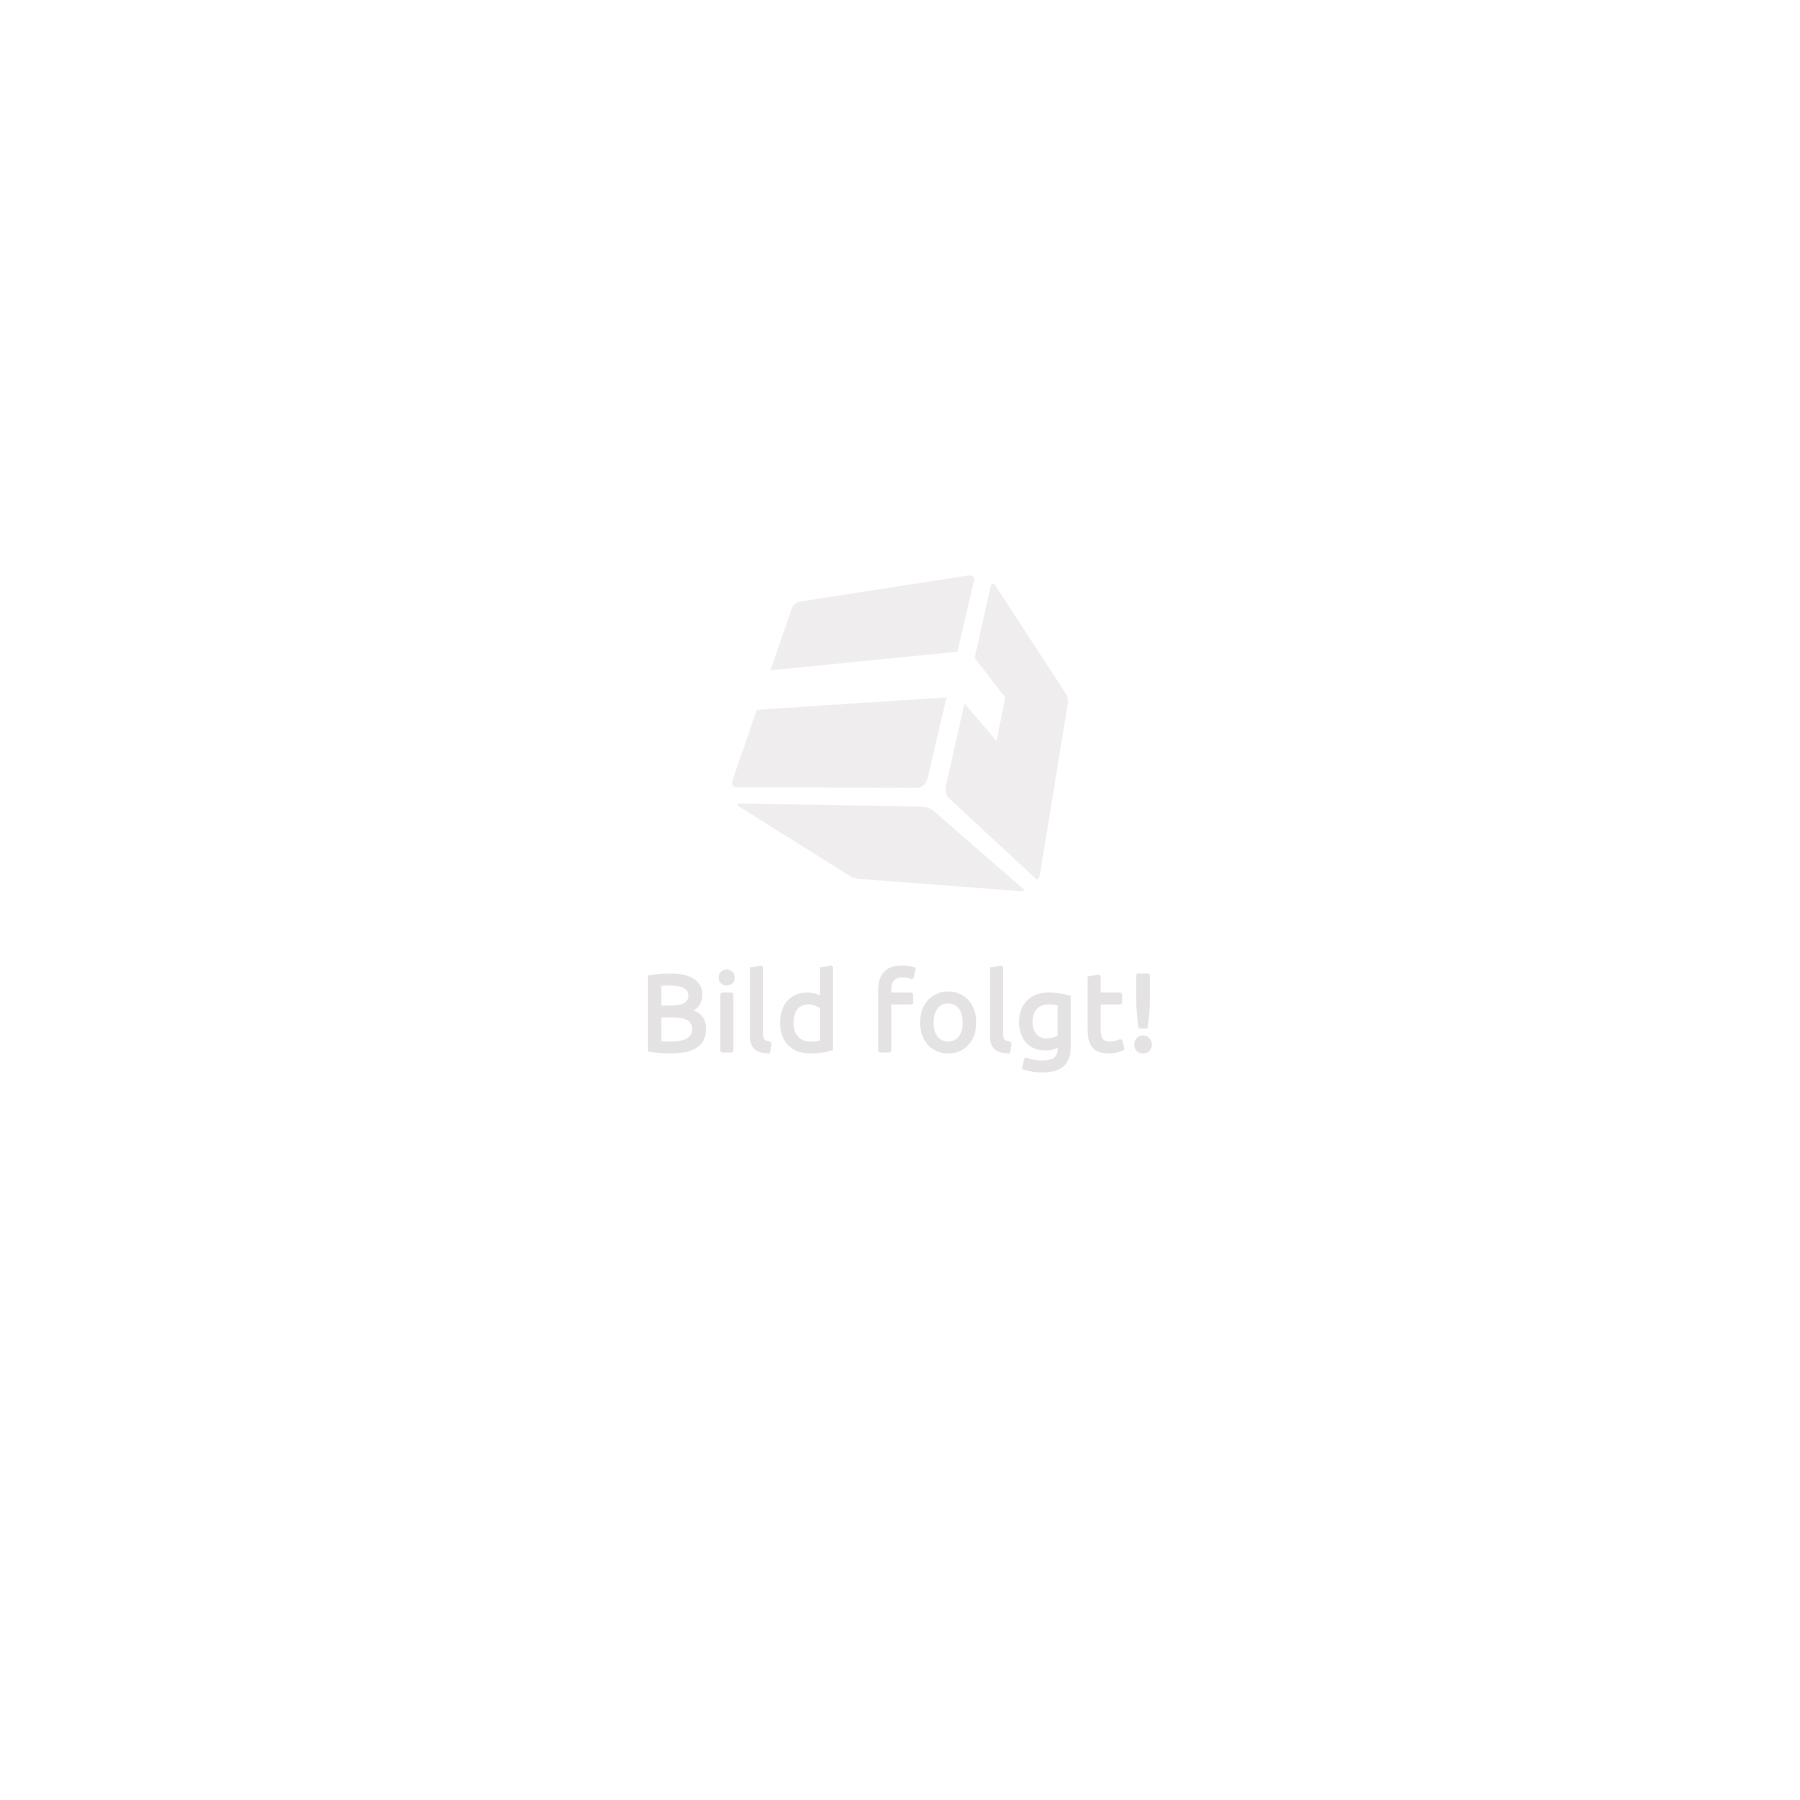 Human skeleton and muscle painting